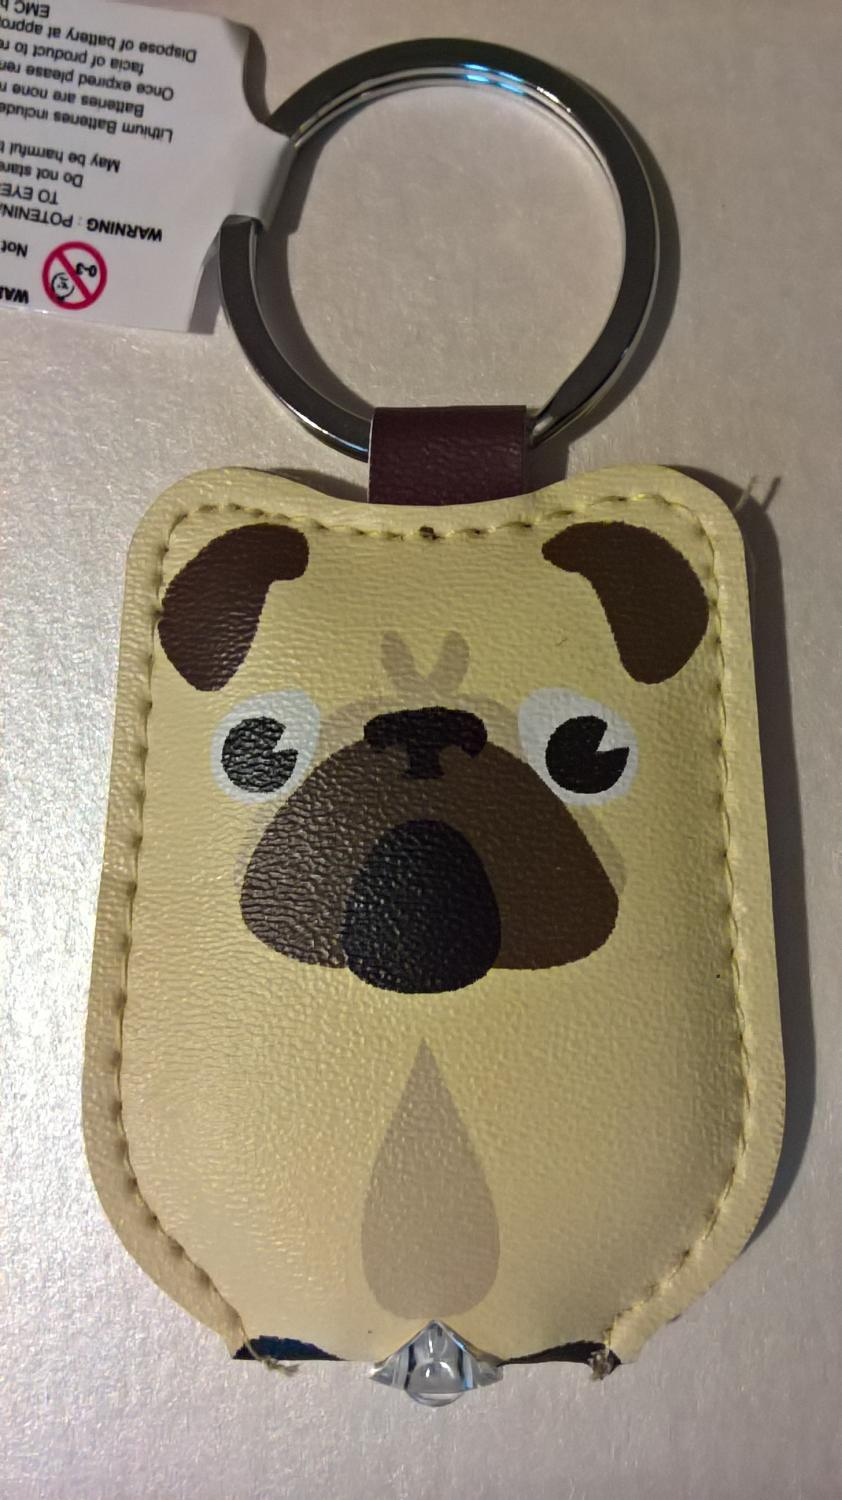 Light up keyring pug